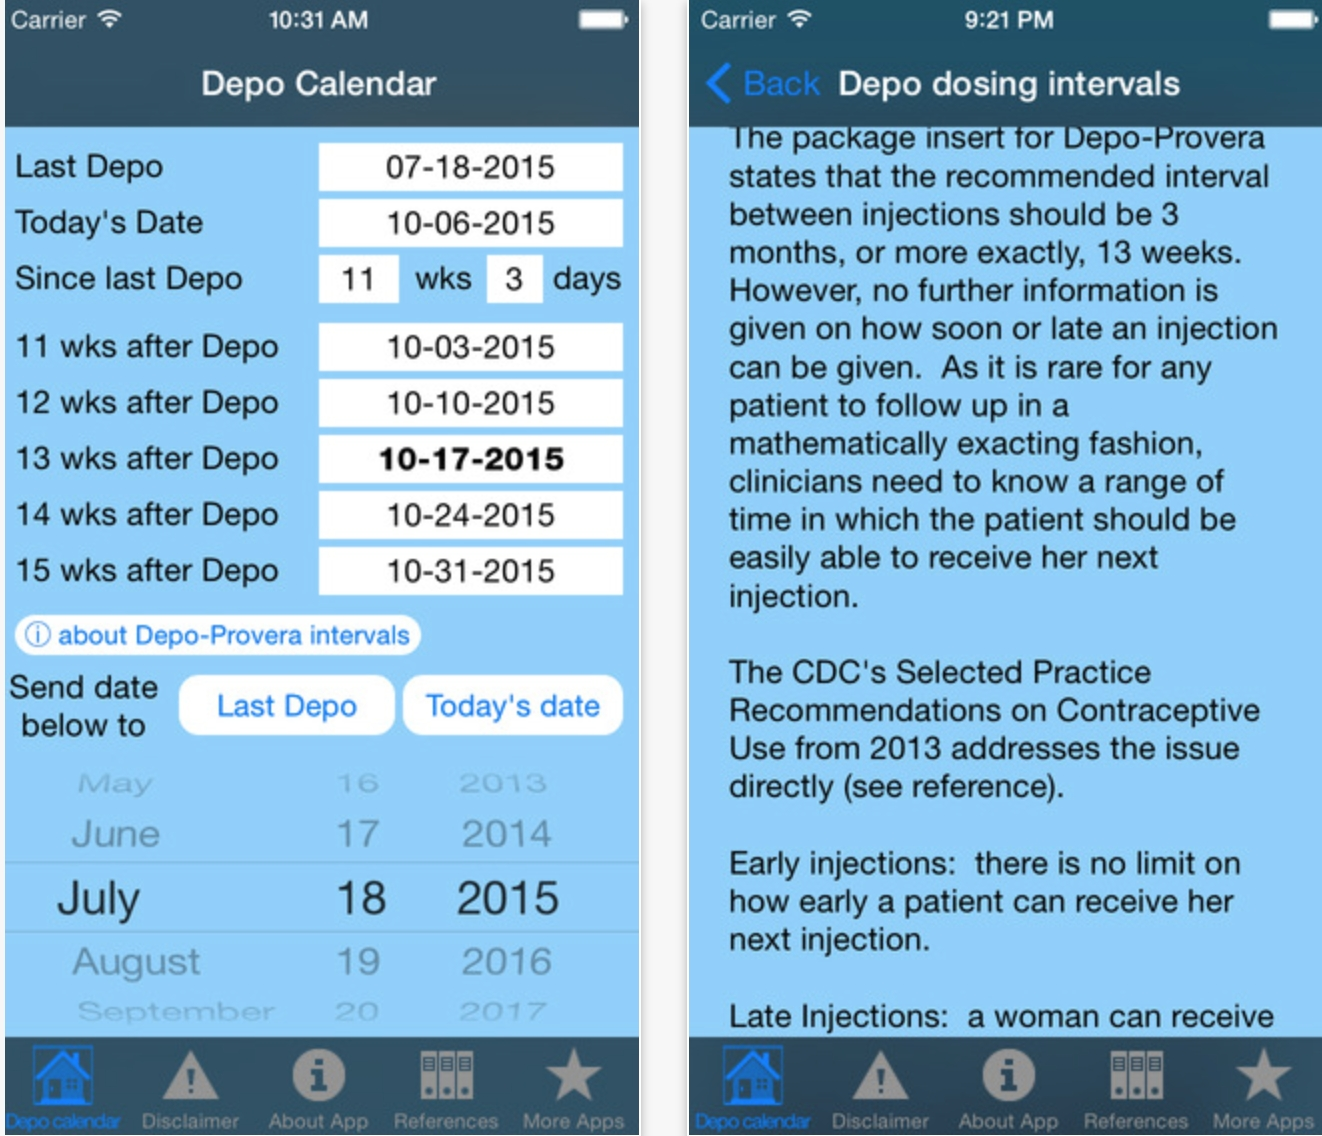 Depo Calendar App Could Significantly Improve Contraception  Depo Provera 15 Week Calendar